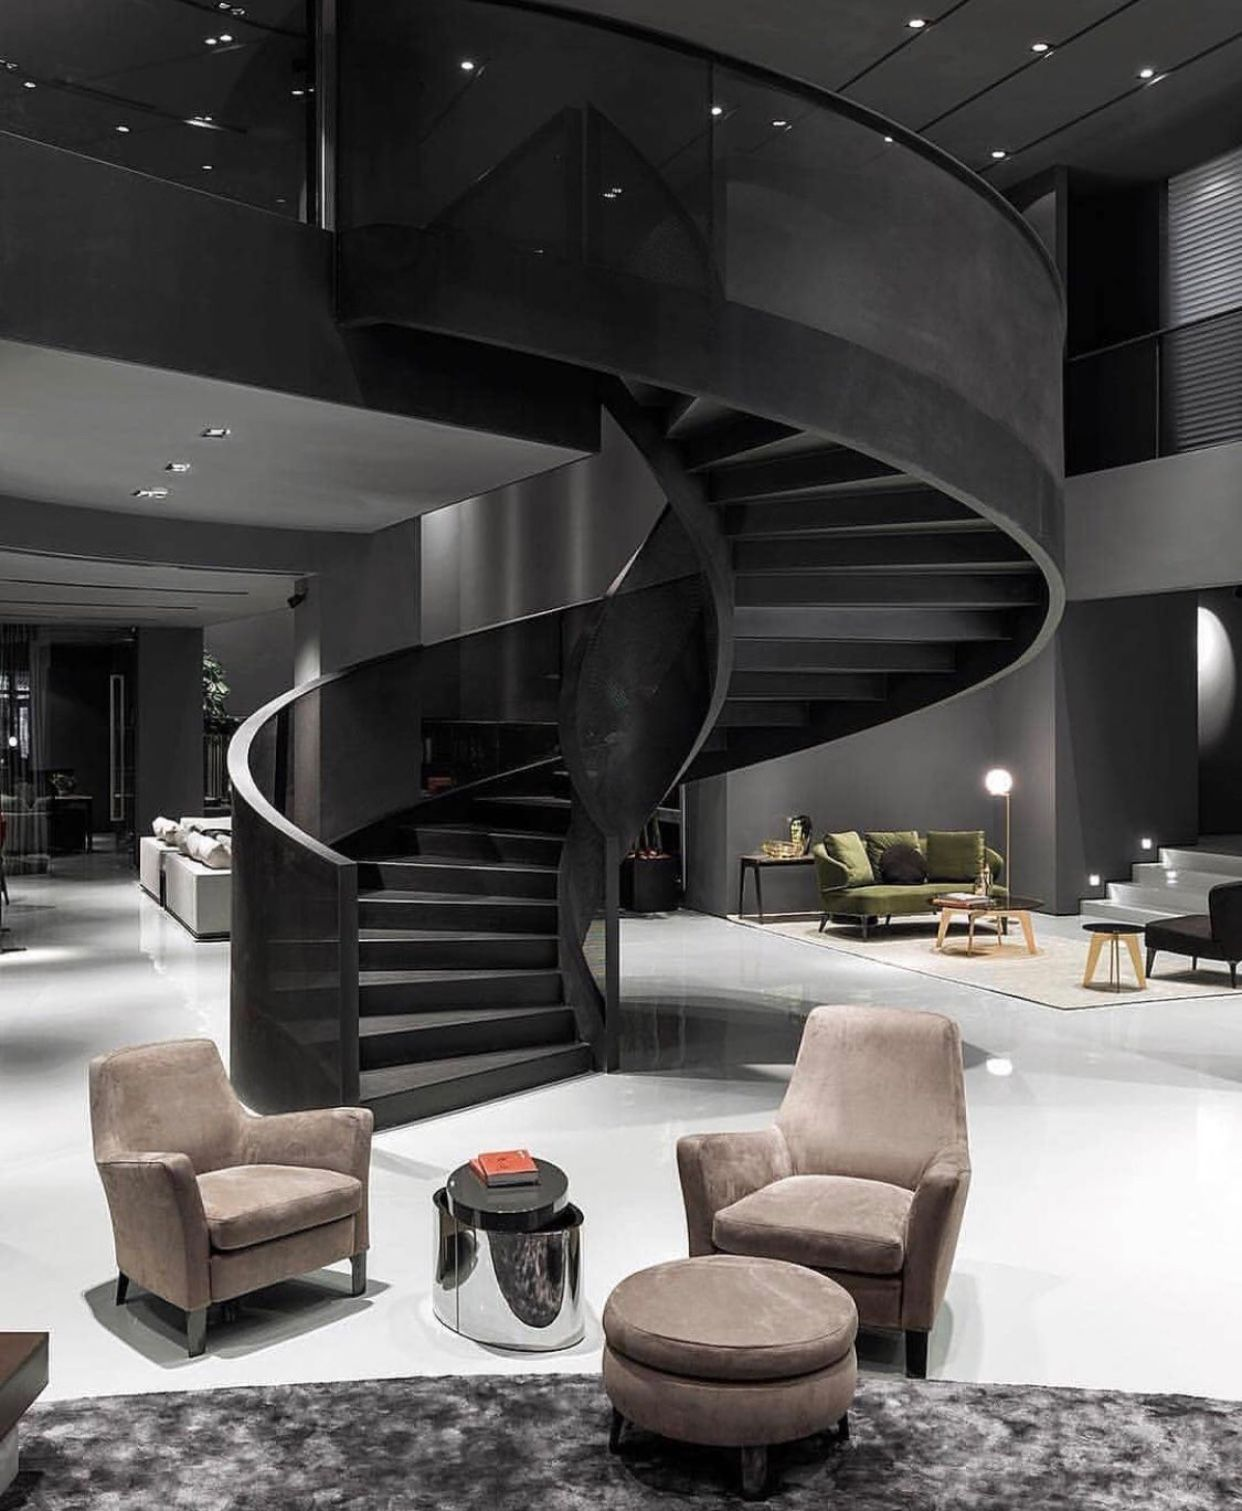 House goals    not even kidding retail interior exterior apartment also pin by ceola johnson on future home in pinterest rh